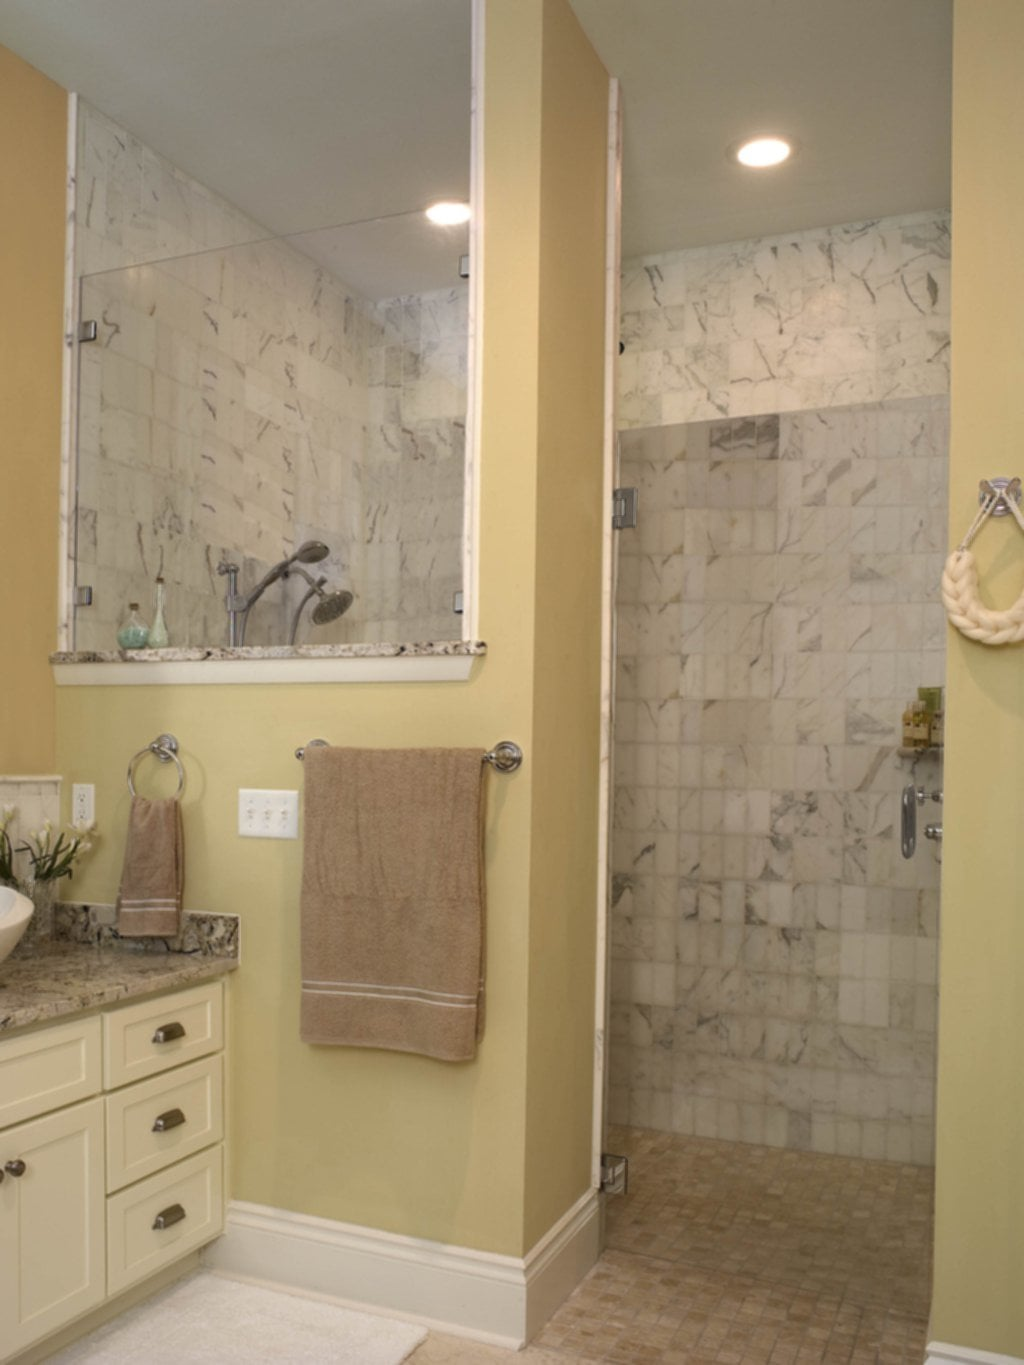 Shower Stall Small Bathrooms Northshore Millwork Llc Bathroom Bathroom Vani Shower Stalls For Small Bathrooms